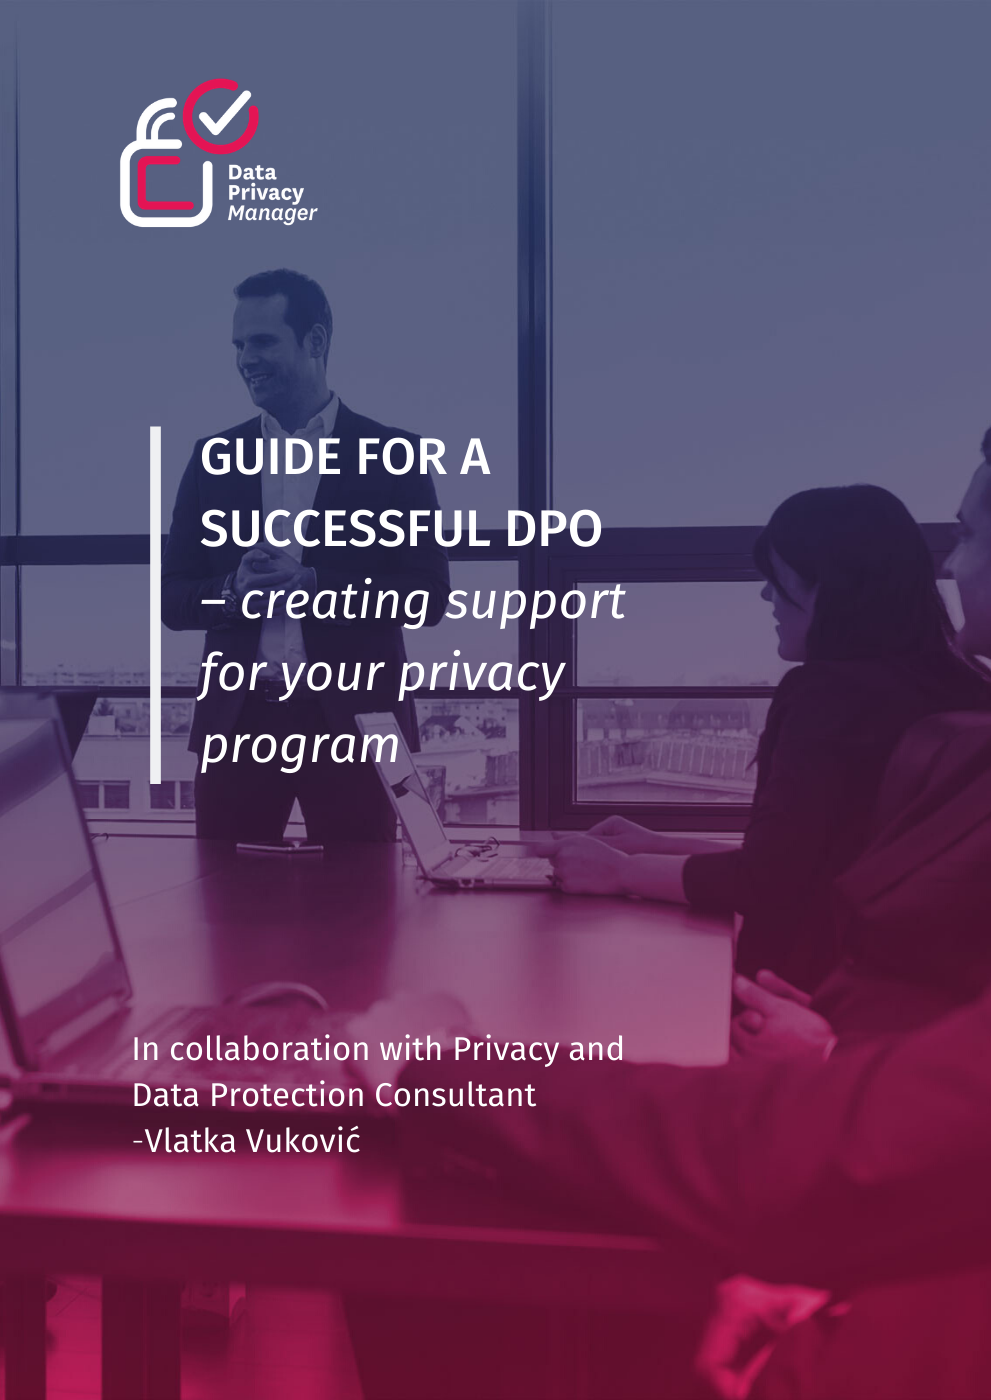 GUIDE FOR A SUCCESSFUL DPO – creating support for your privacy program